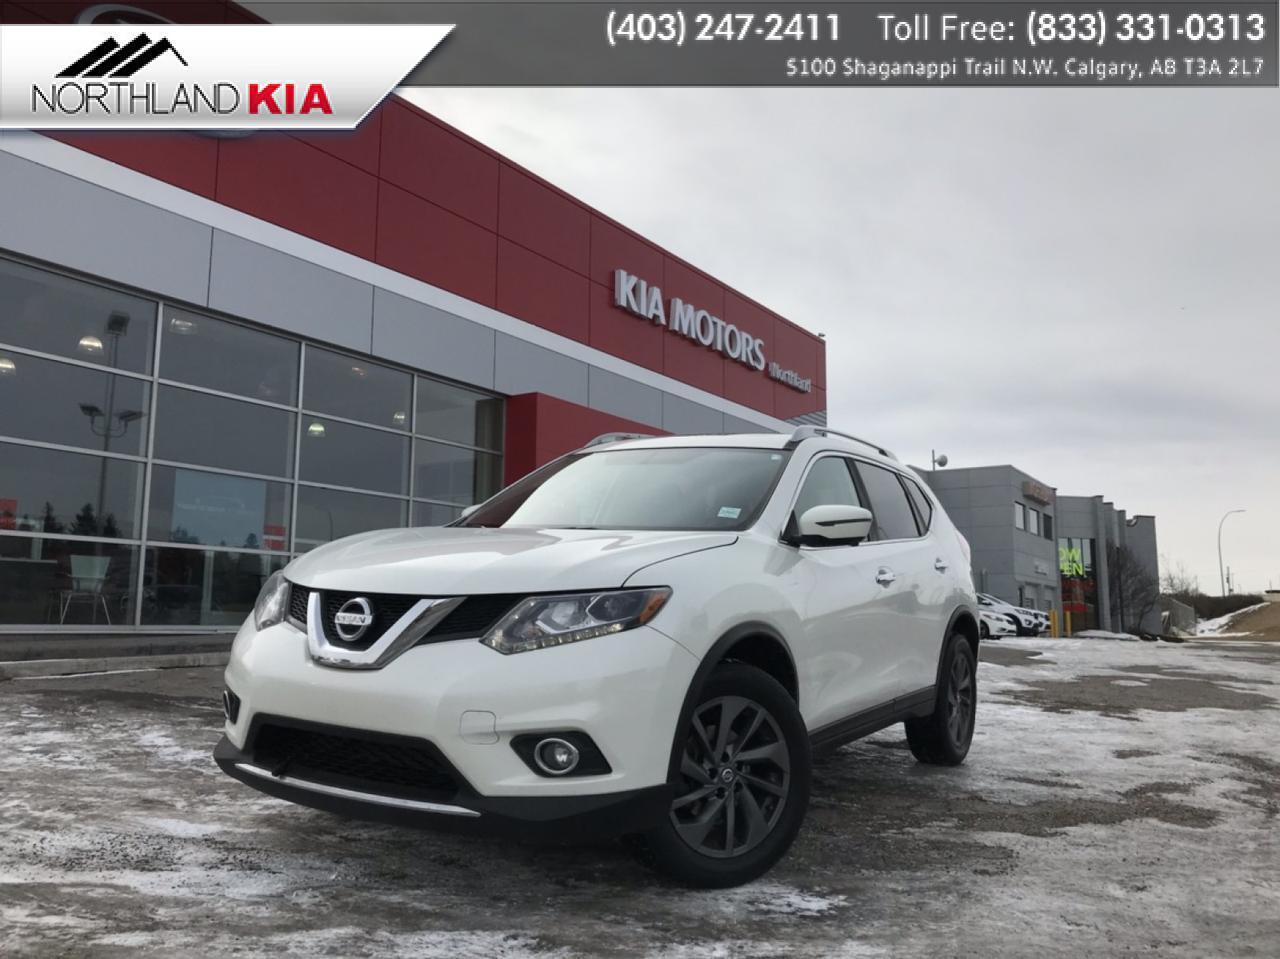 2016 Nissan Rogue SL AWD, 360 BACKUP CAMERA, NAV, HEATED SEATS Calgary AB